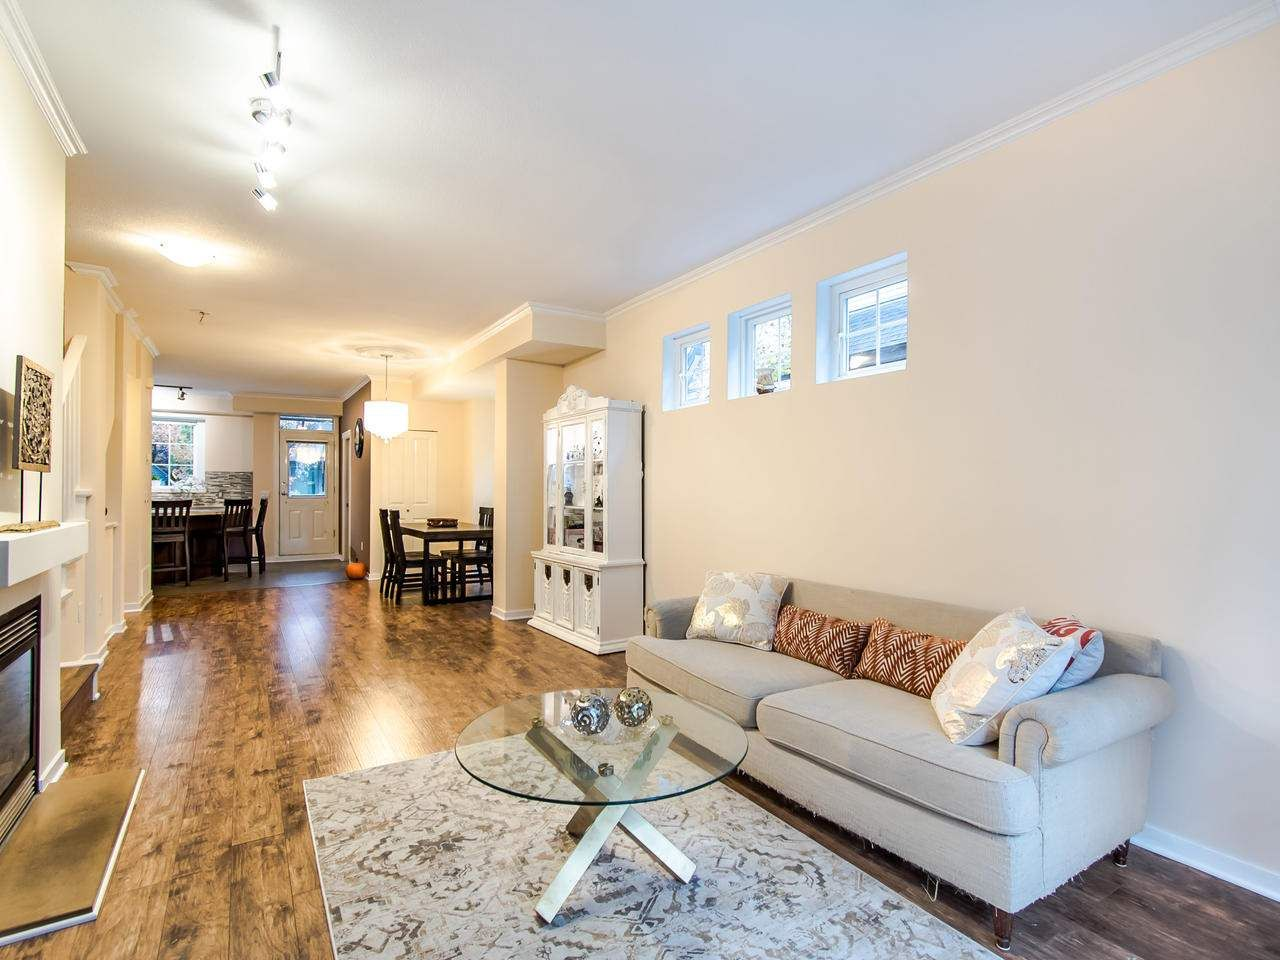 """Photo 5: Photos: 7 2200 PANORAMA Drive in Port Moody: Heritage Woods PM Townhouse for sale in """"THE QUEST"""" : MLS®# R2414883"""